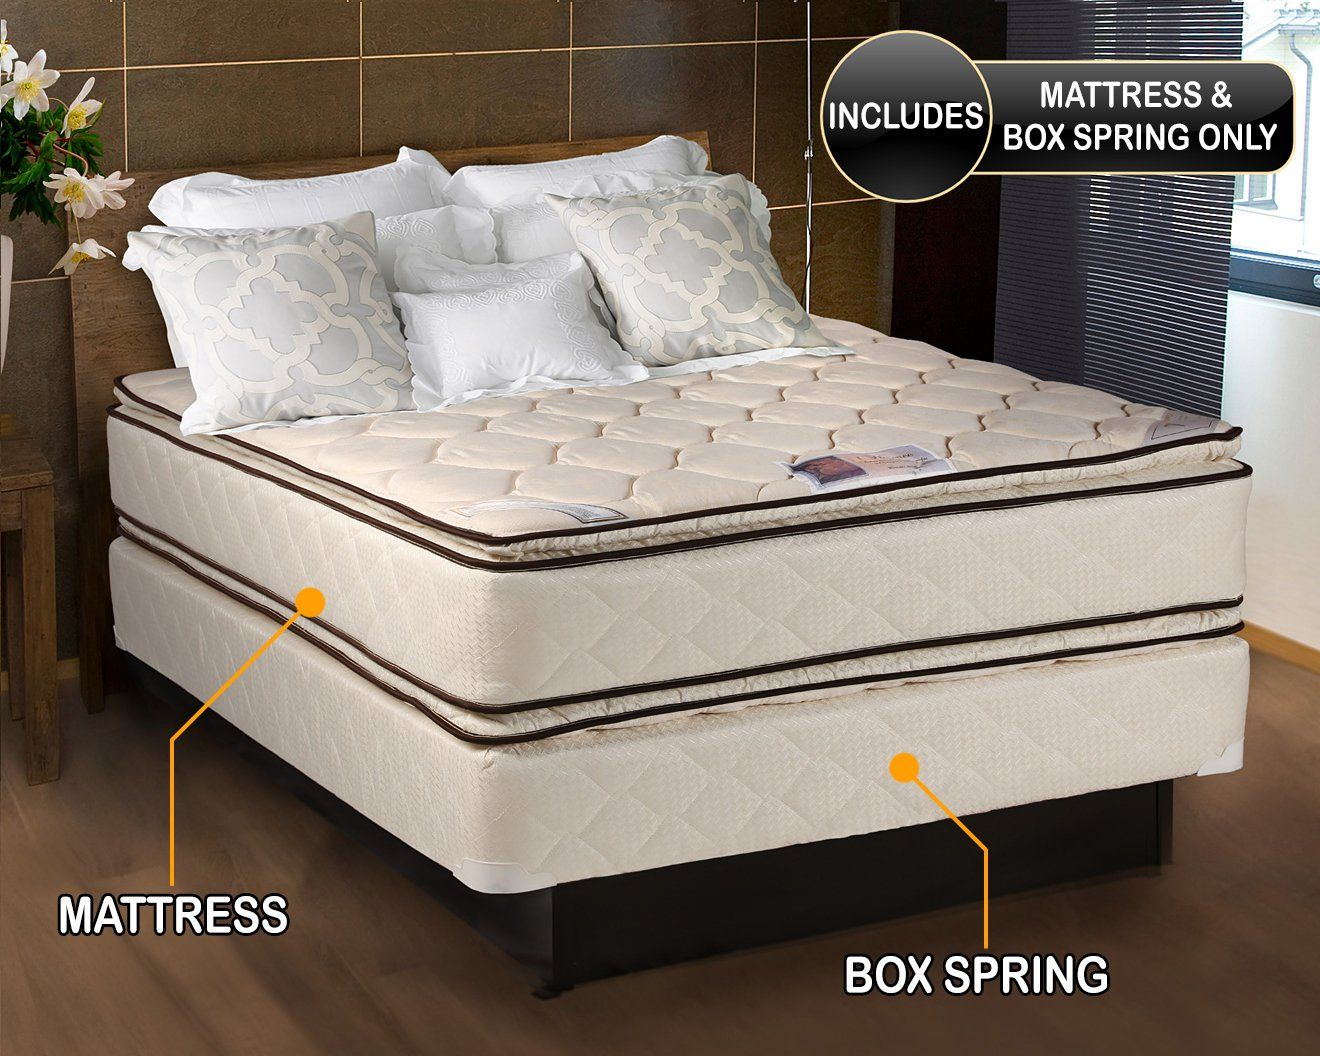 coil comfort pillow top mattress and box spring set full doublesided